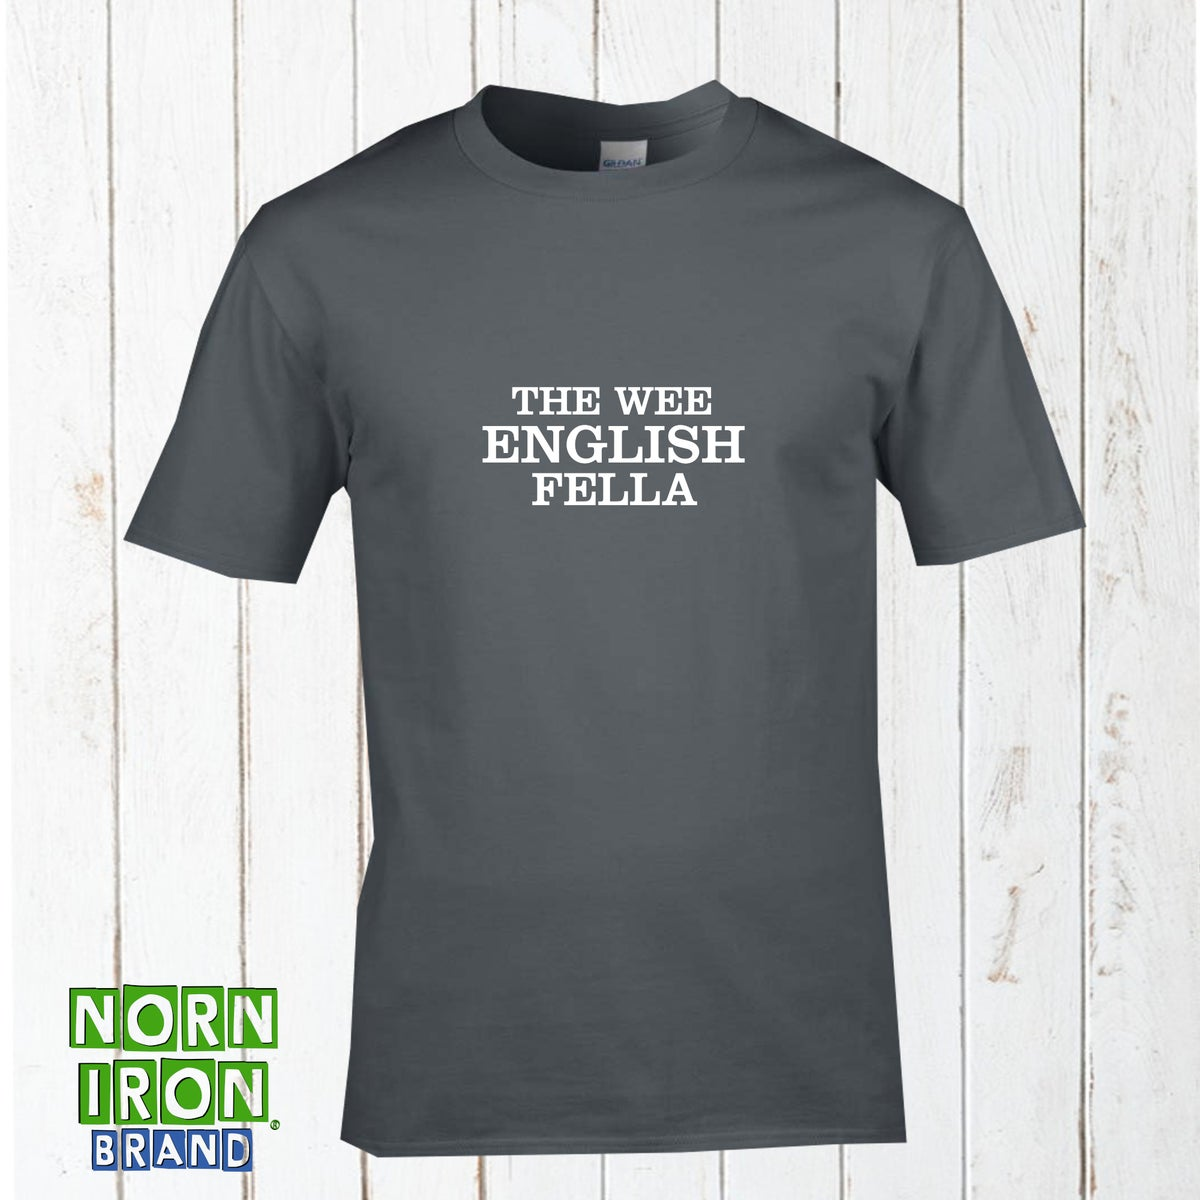 The Wee English Fella T-Shirt